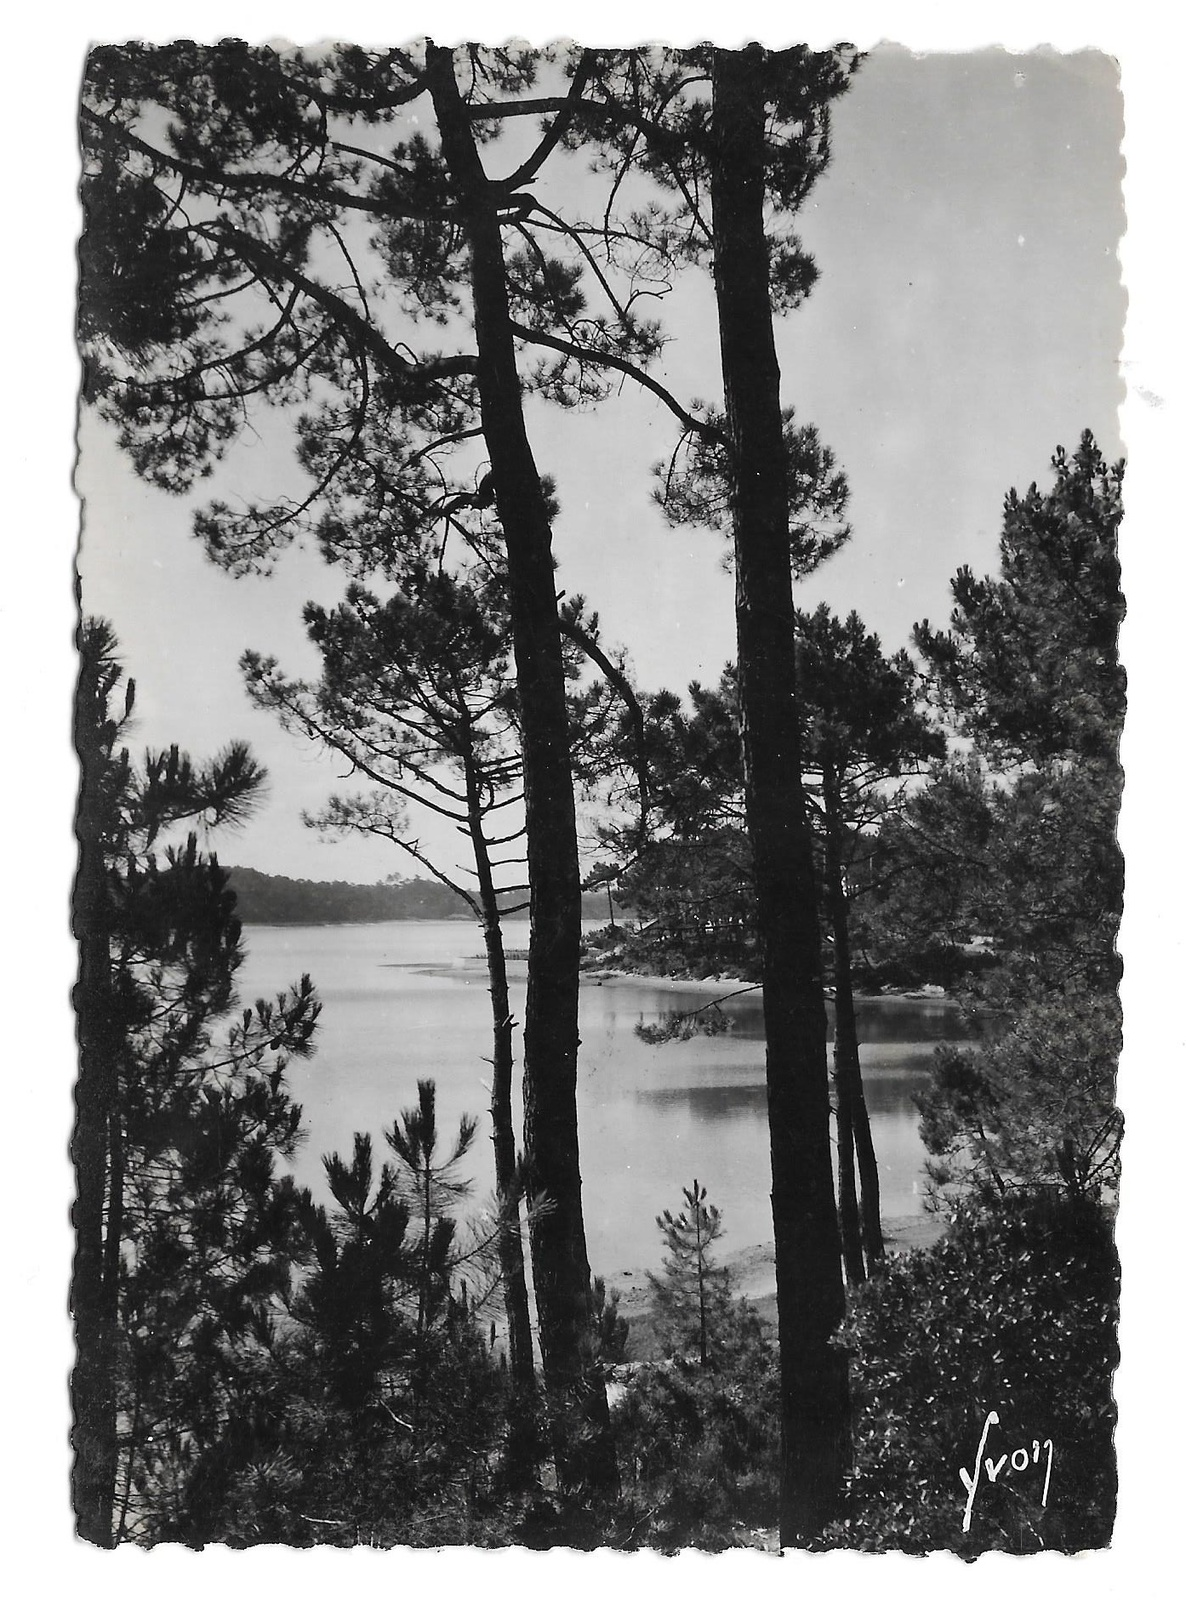 France Lac Marin Hossegor Landes View Thru Pines Glossy YVON Photo Postcard 4X6